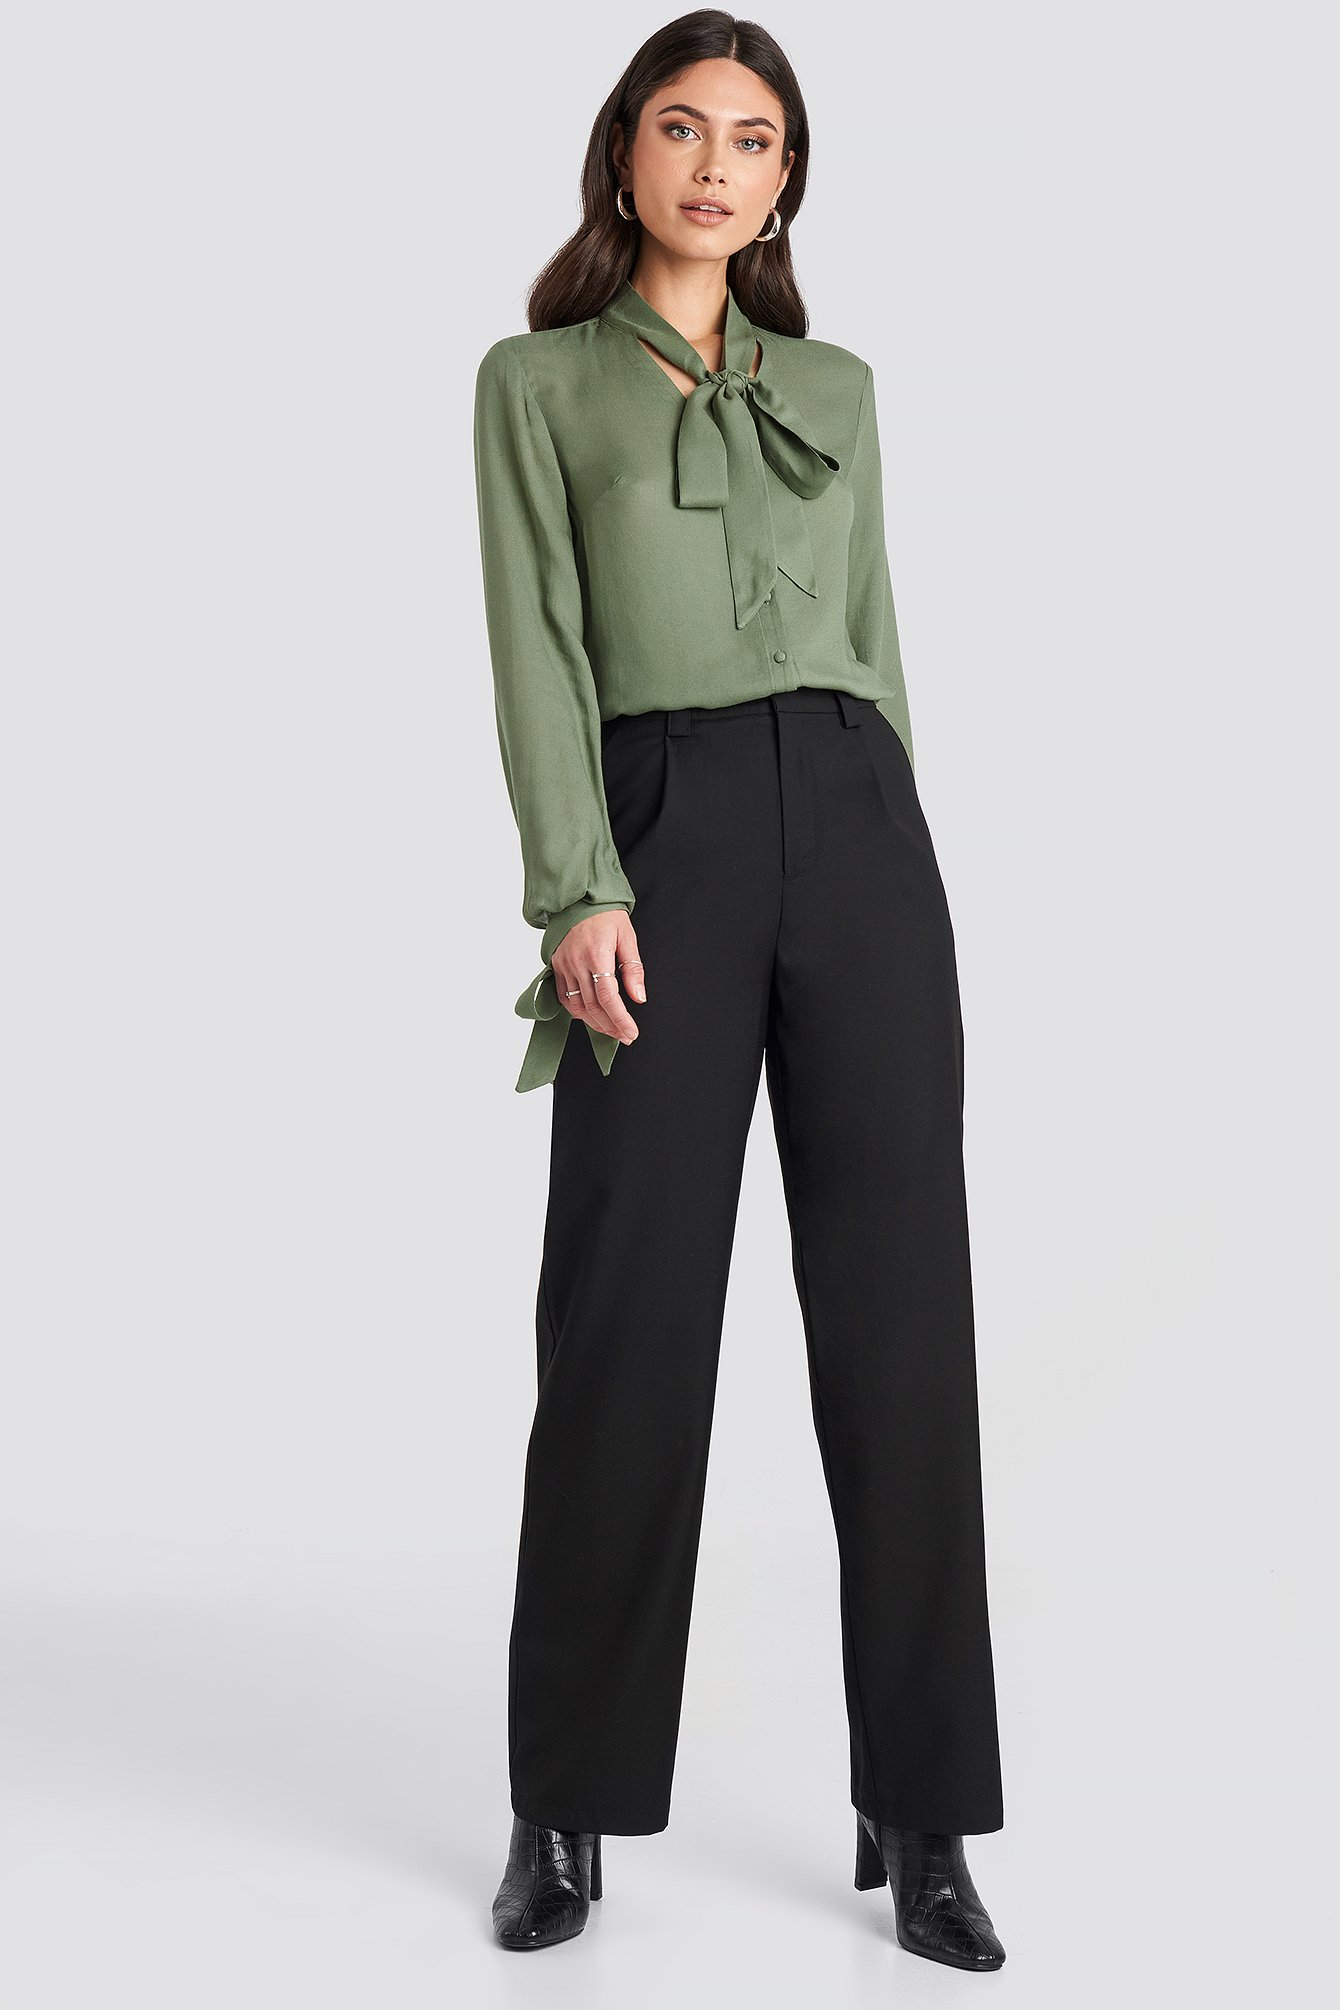 nicole mazzocato x na-kd -  Highwaist Wide Pants - Black